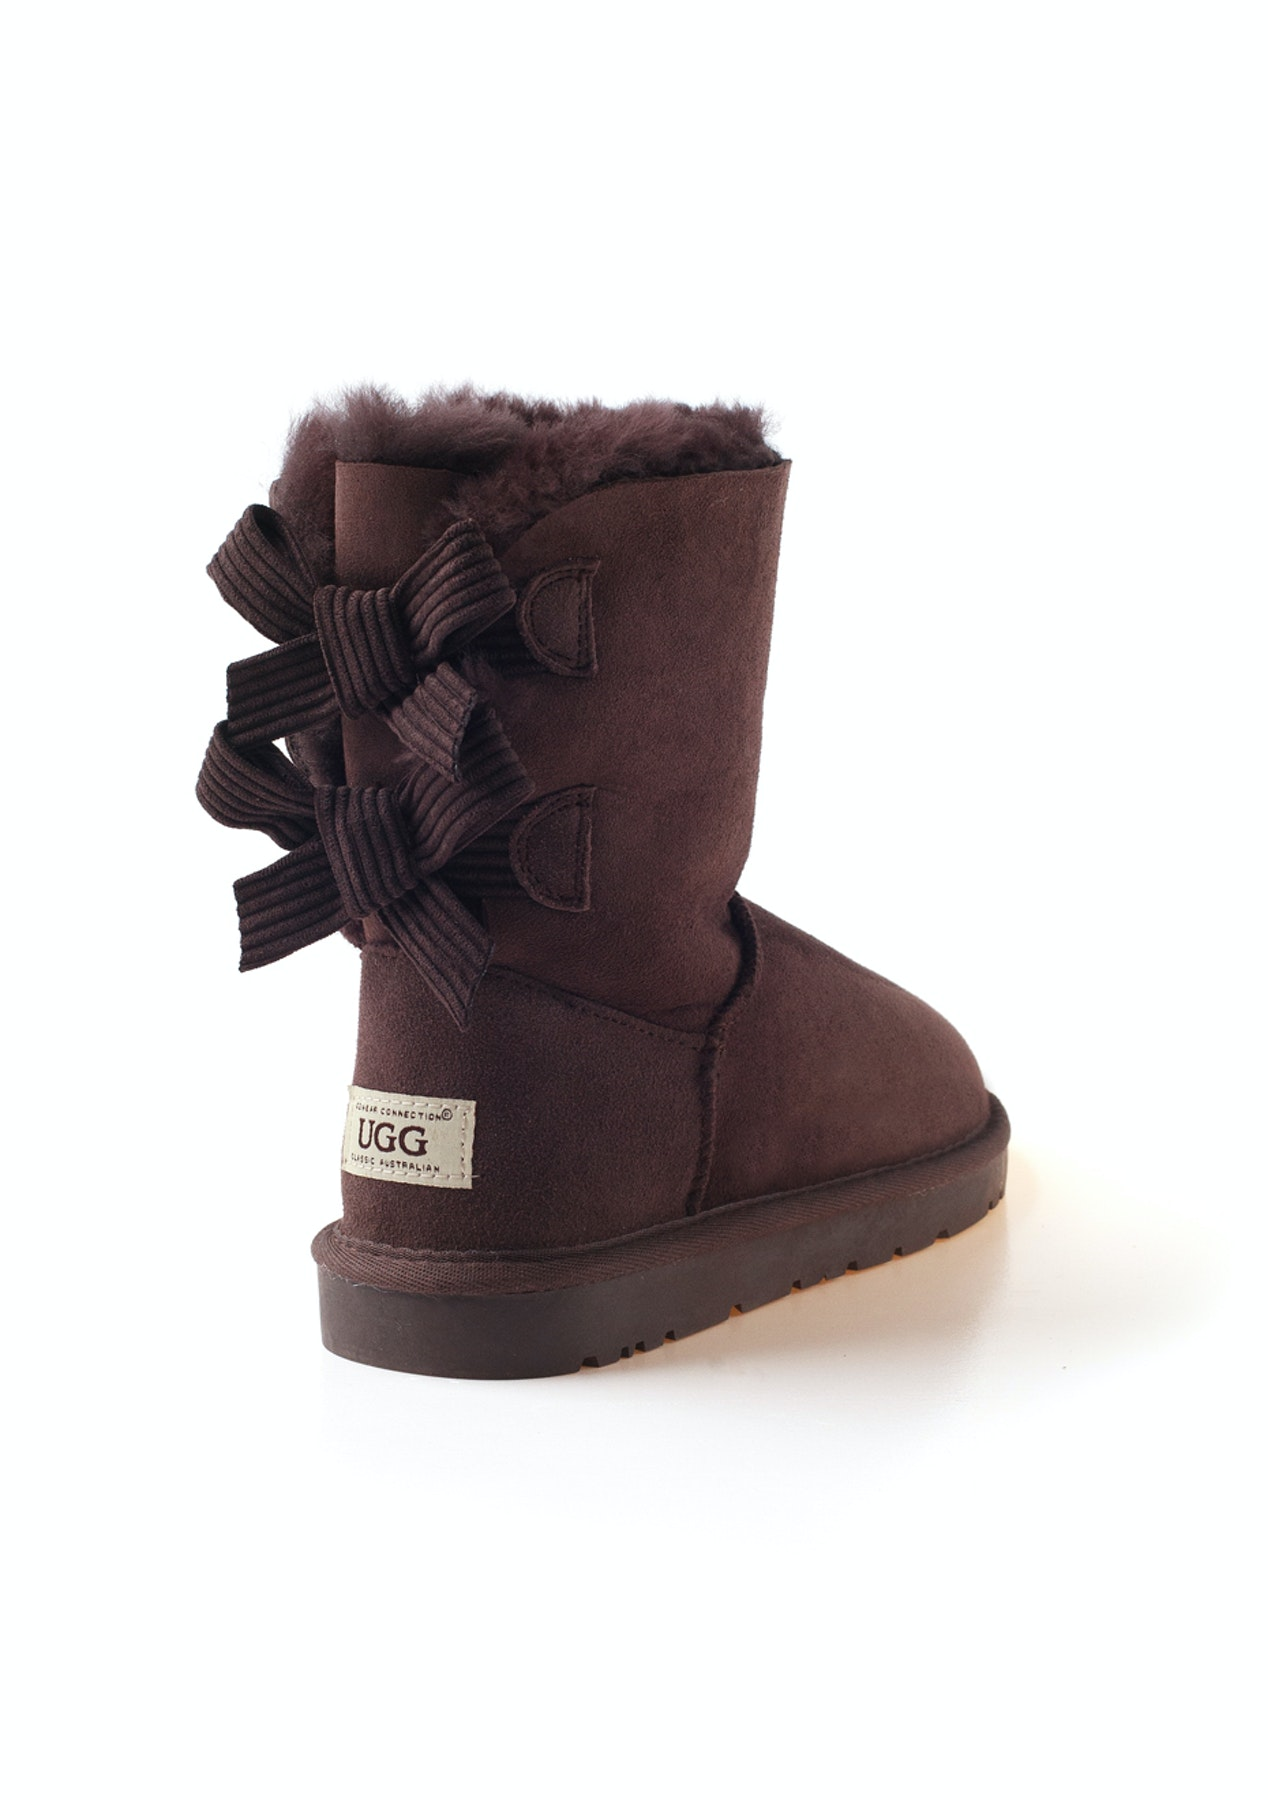 53b789bcb67fd Ozwear - Ugg Bailey Bow Corduroy Boots (Water Resistant) - Chocolate - Last  One Left - Onceit